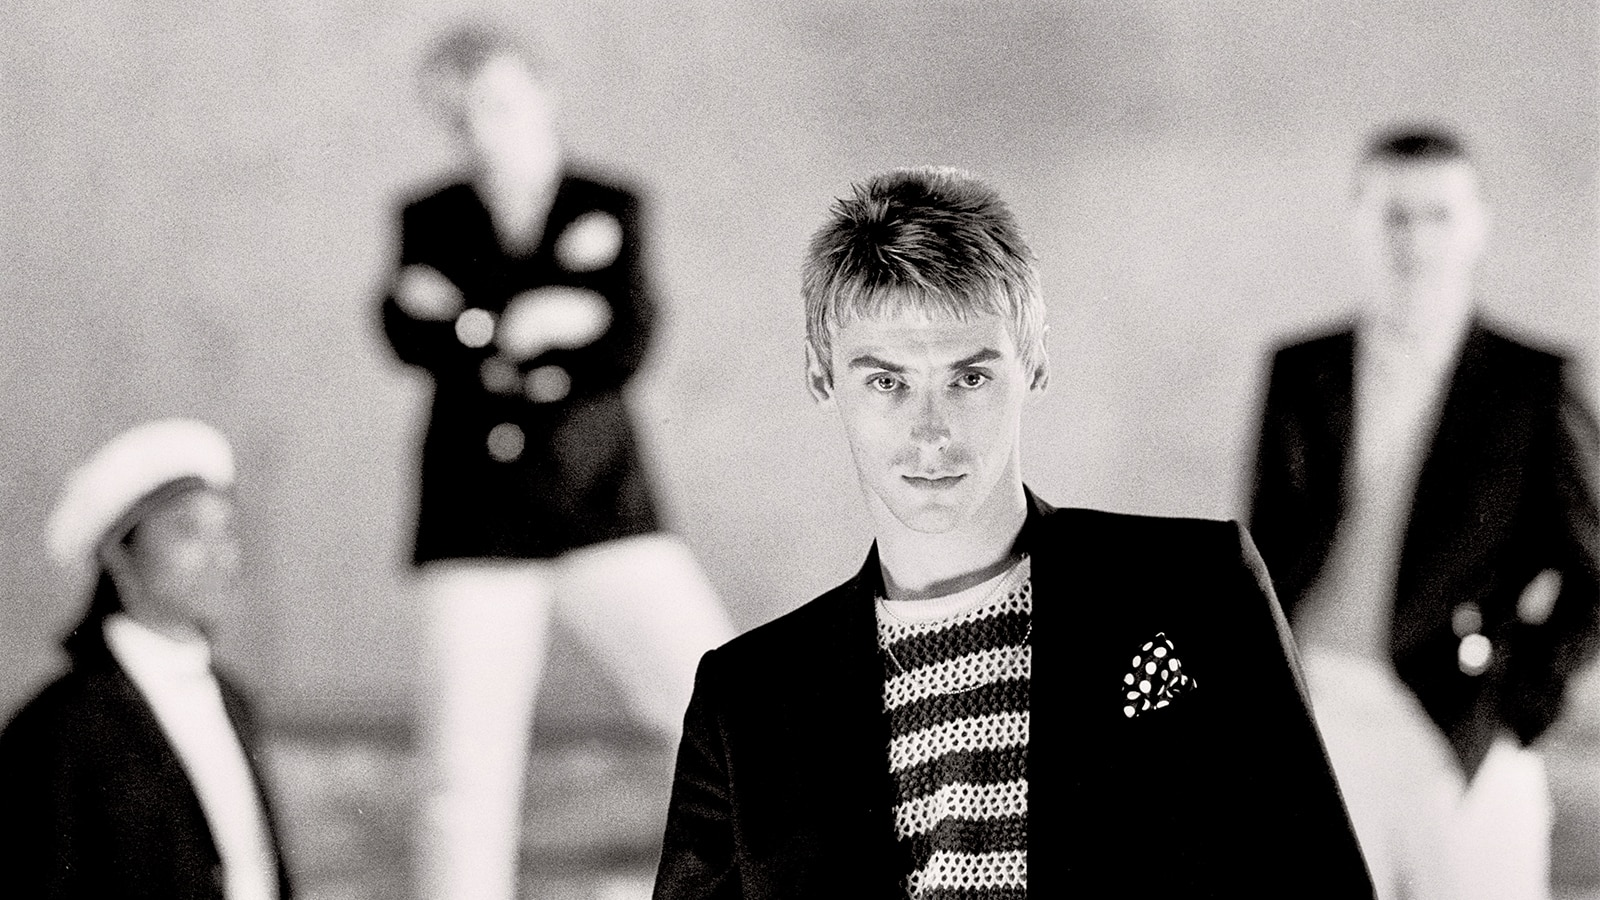 Weller thru his best looks